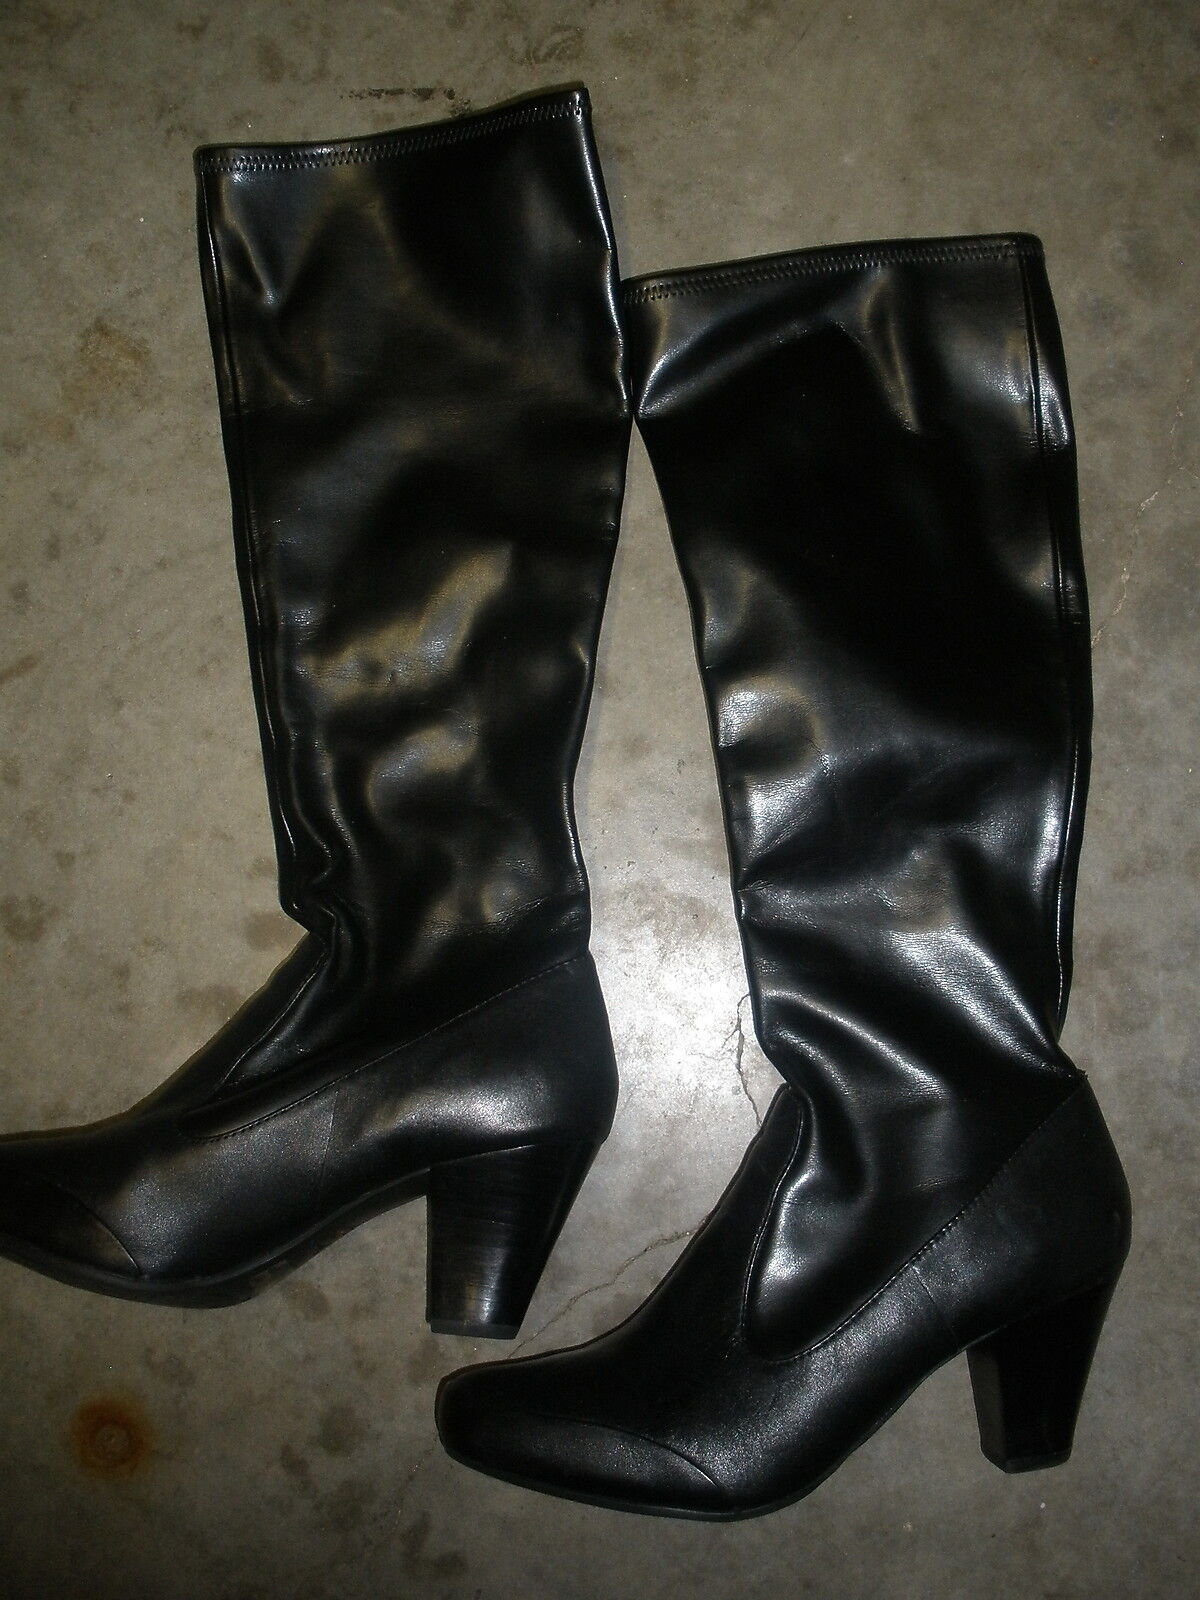 Artisan Collection Black Diamond Glow Black boots size 9W 82986 retails  95